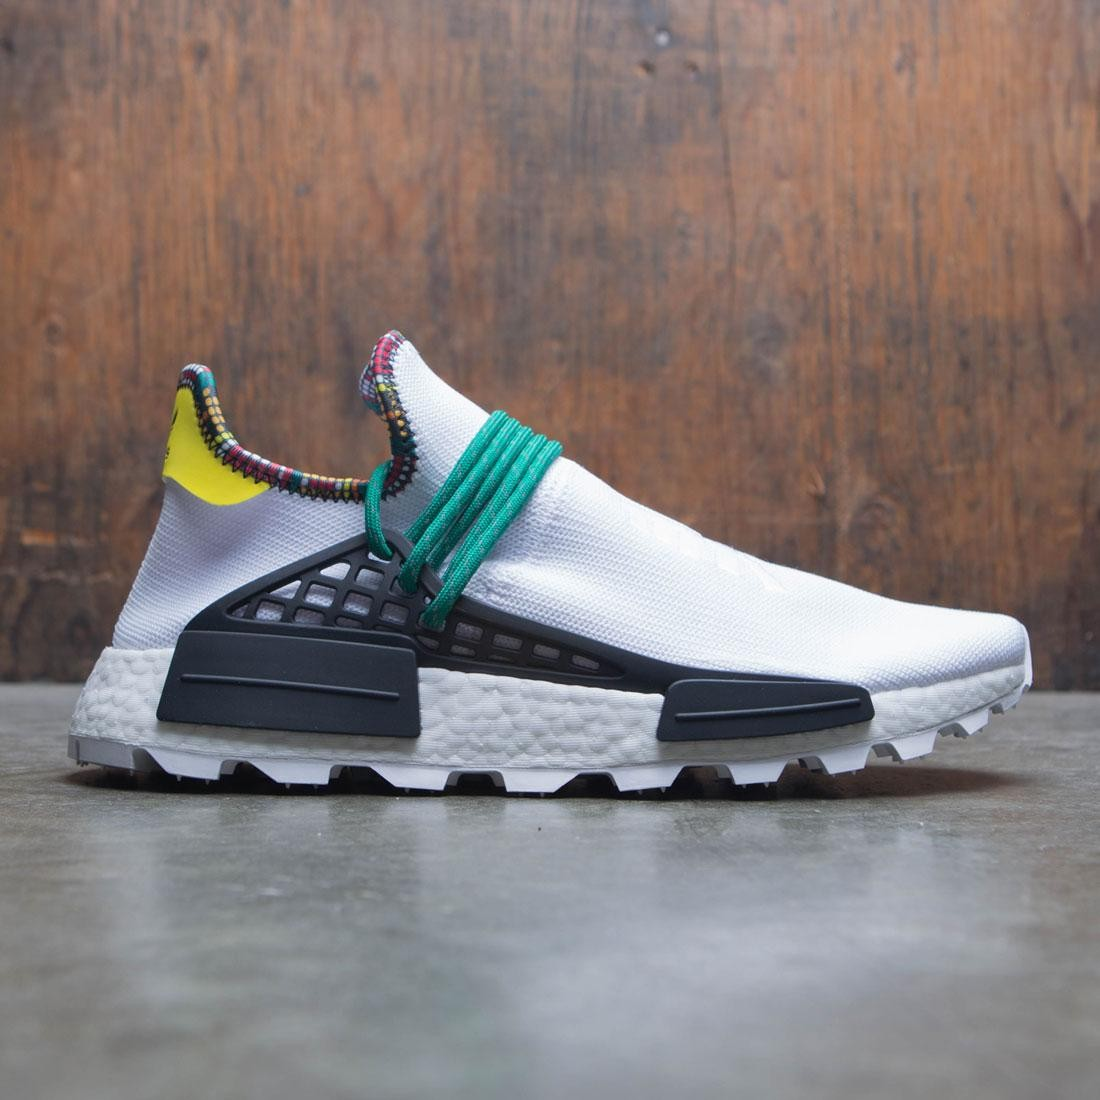 Adidas x Pharrell Williams Men Solar HU NMD (white / cloud white / bold green / bright yellow)